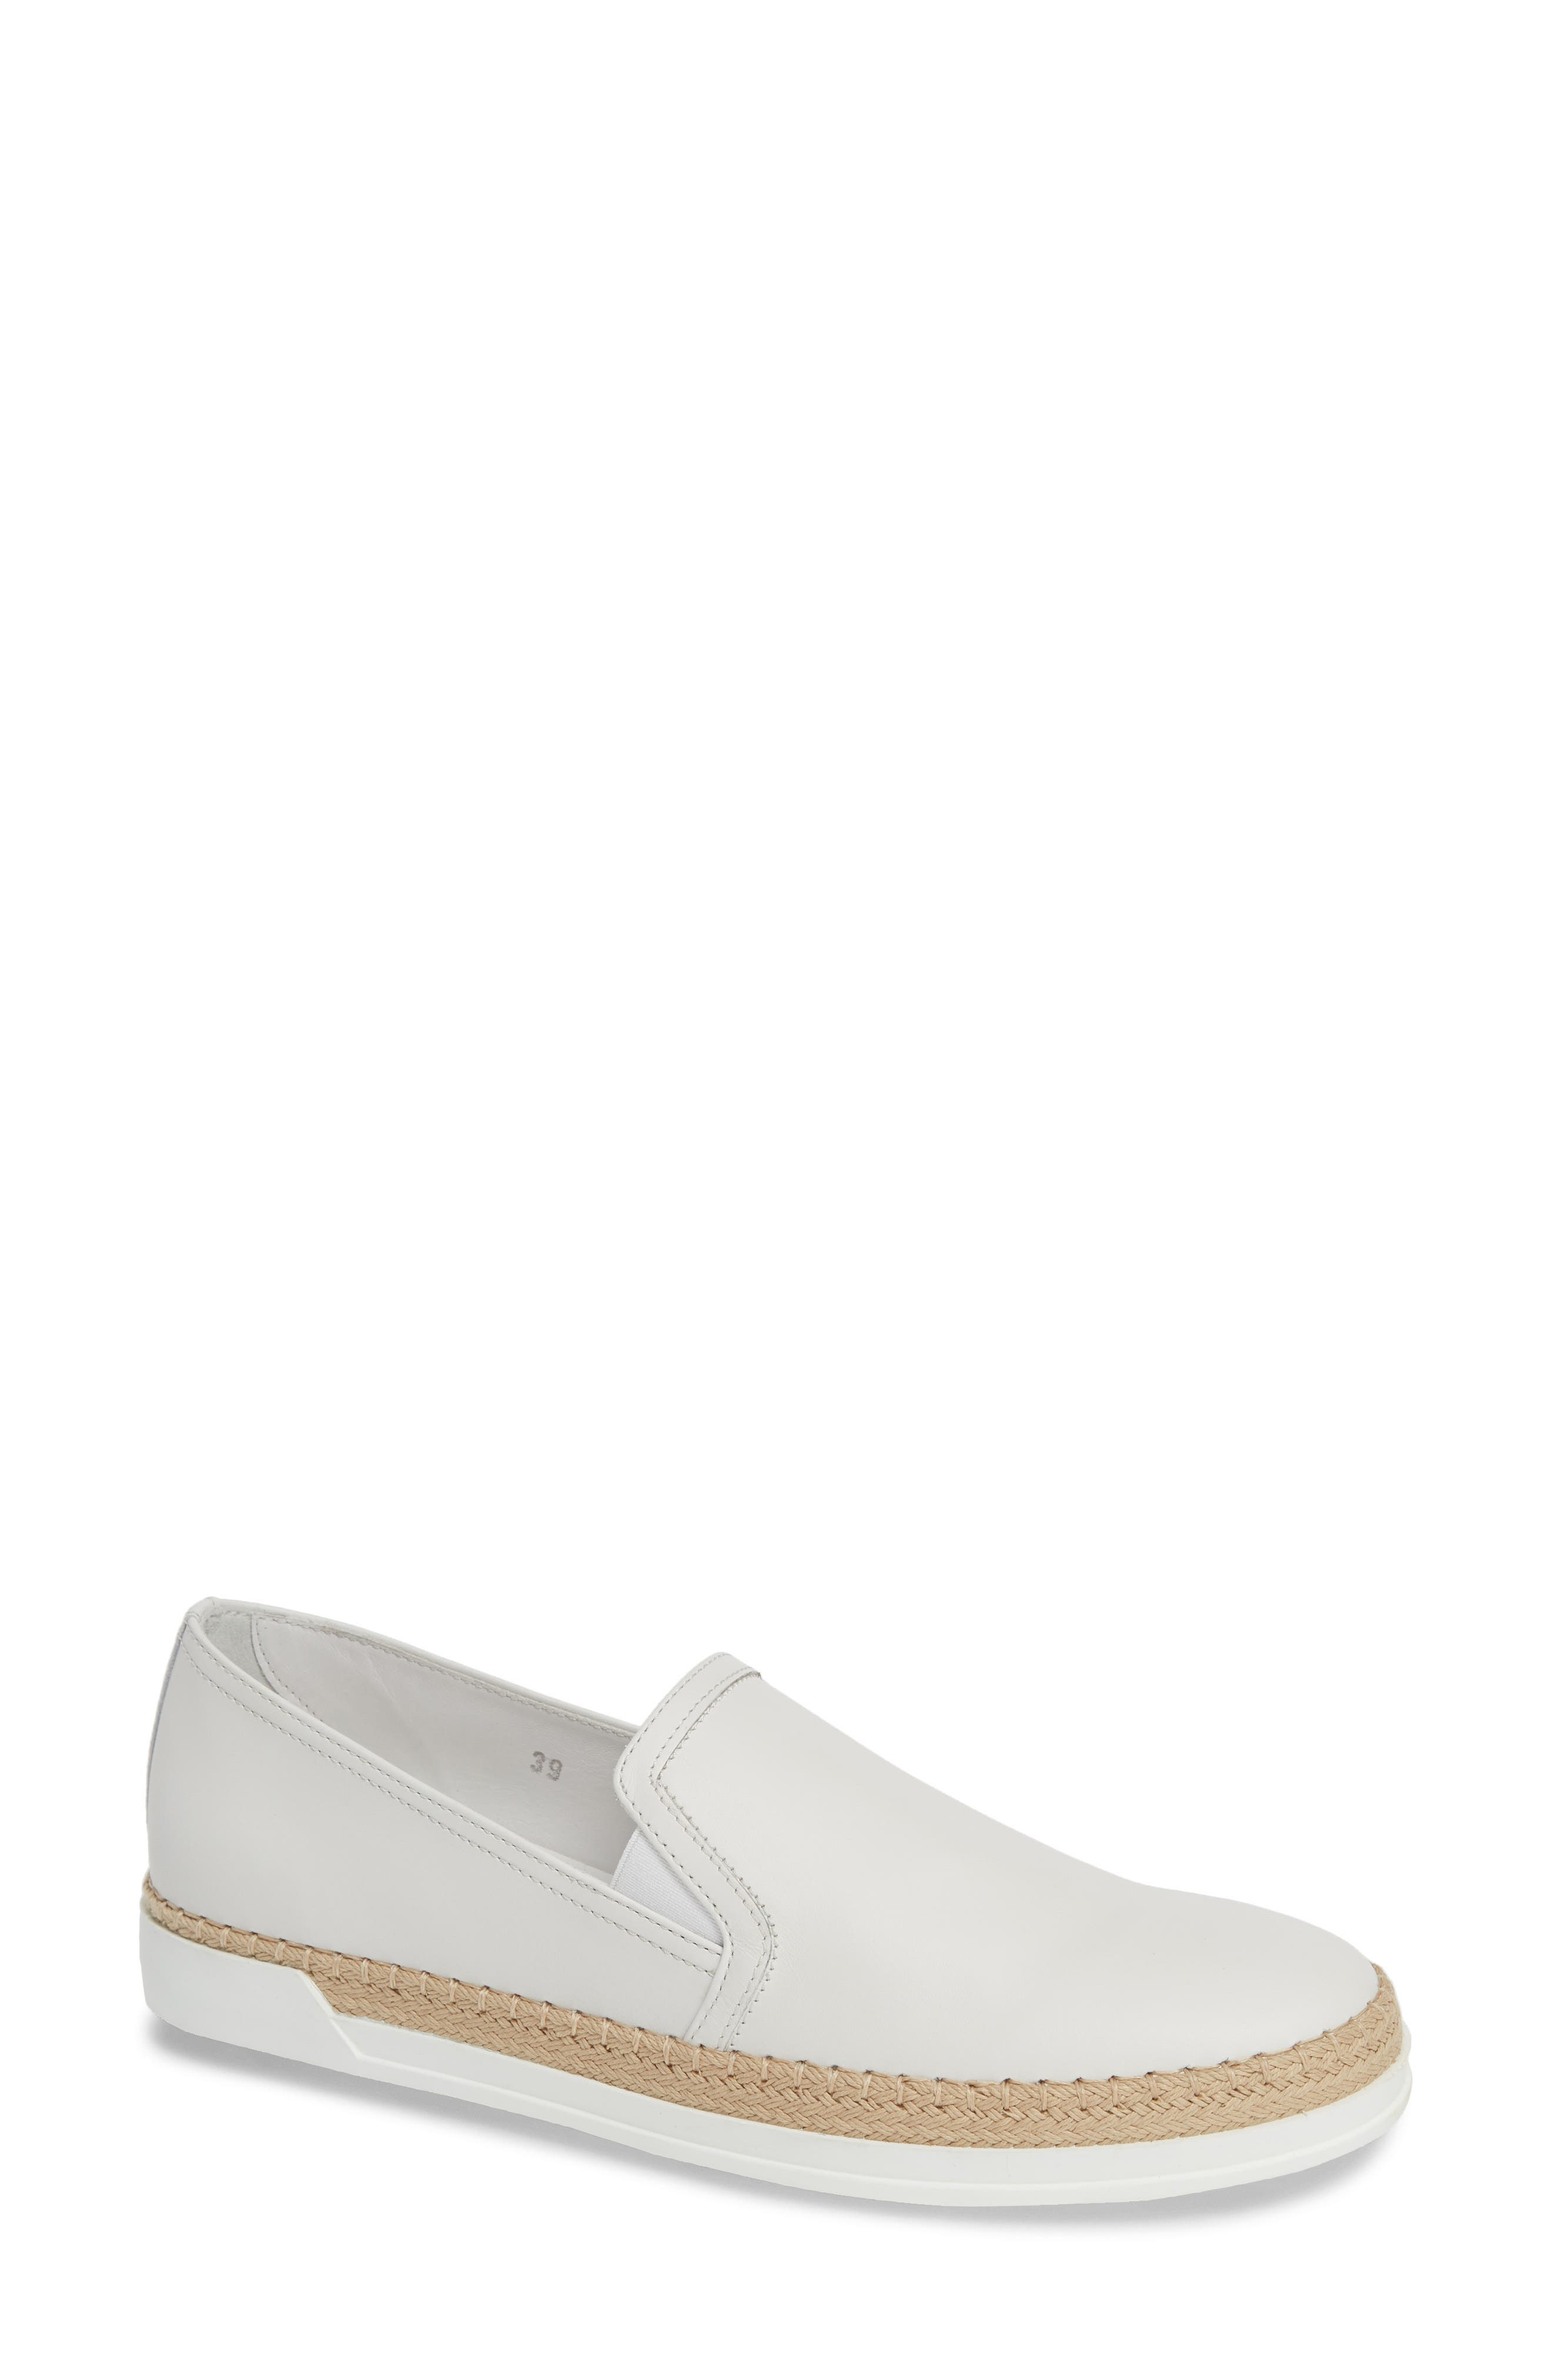 TOD'S, Espadrille Slip-On Sneaker, Main thumbnail 1, color, WHITE LEATHER